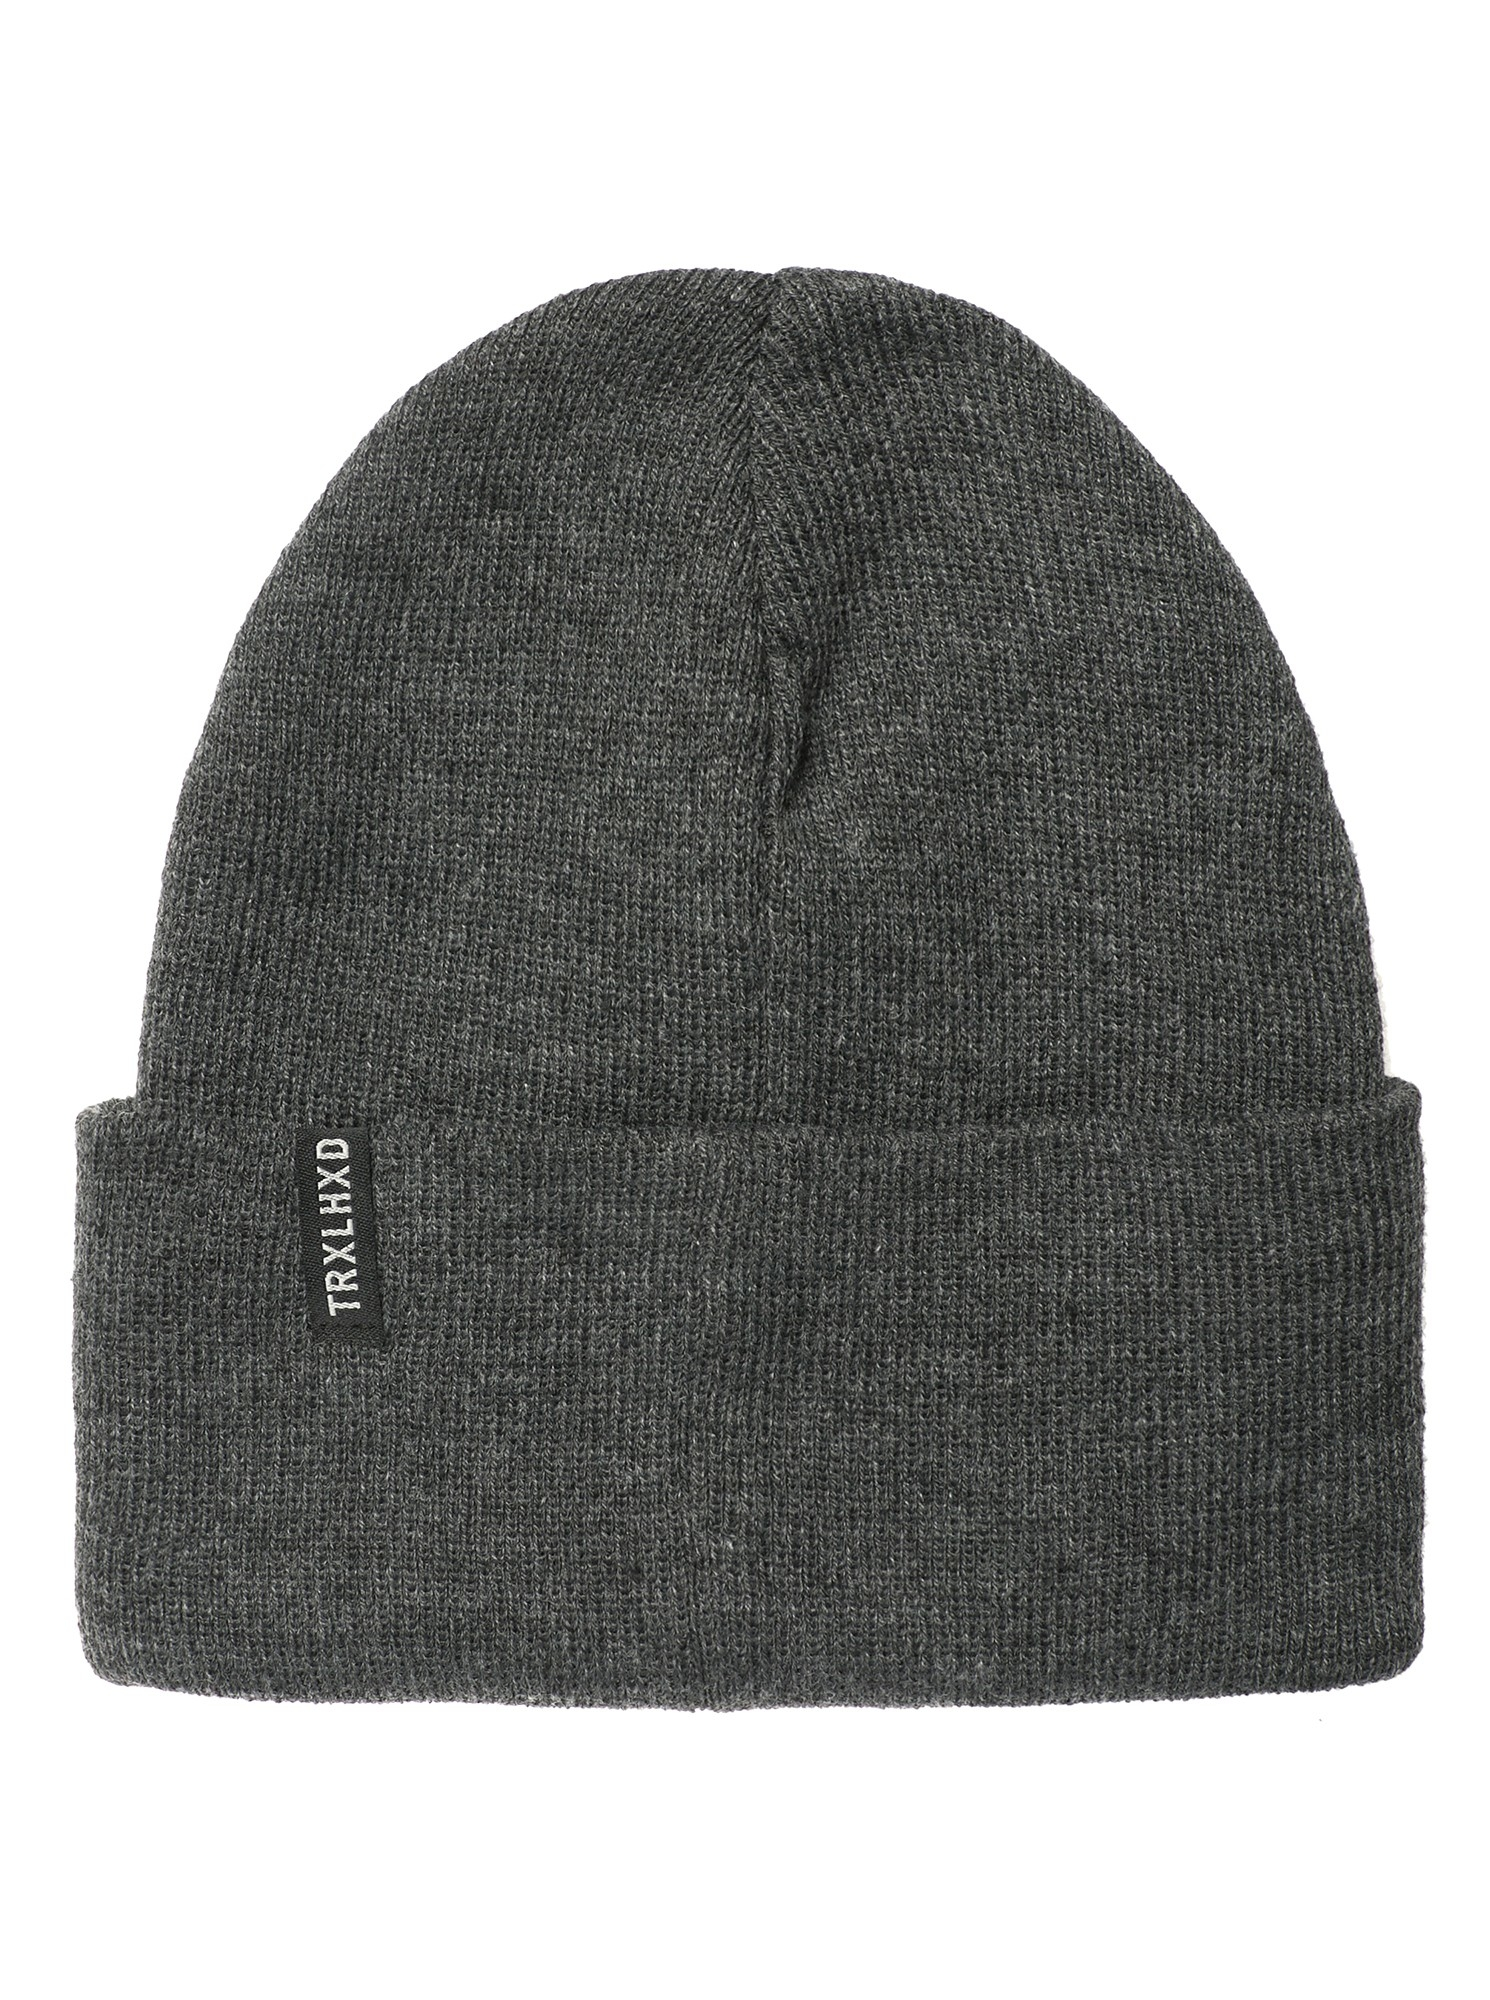 Шапка TRAILHEAD HAT19-LBL-ELITE-DGR, HAT19-LBL-ELITE, фото 3